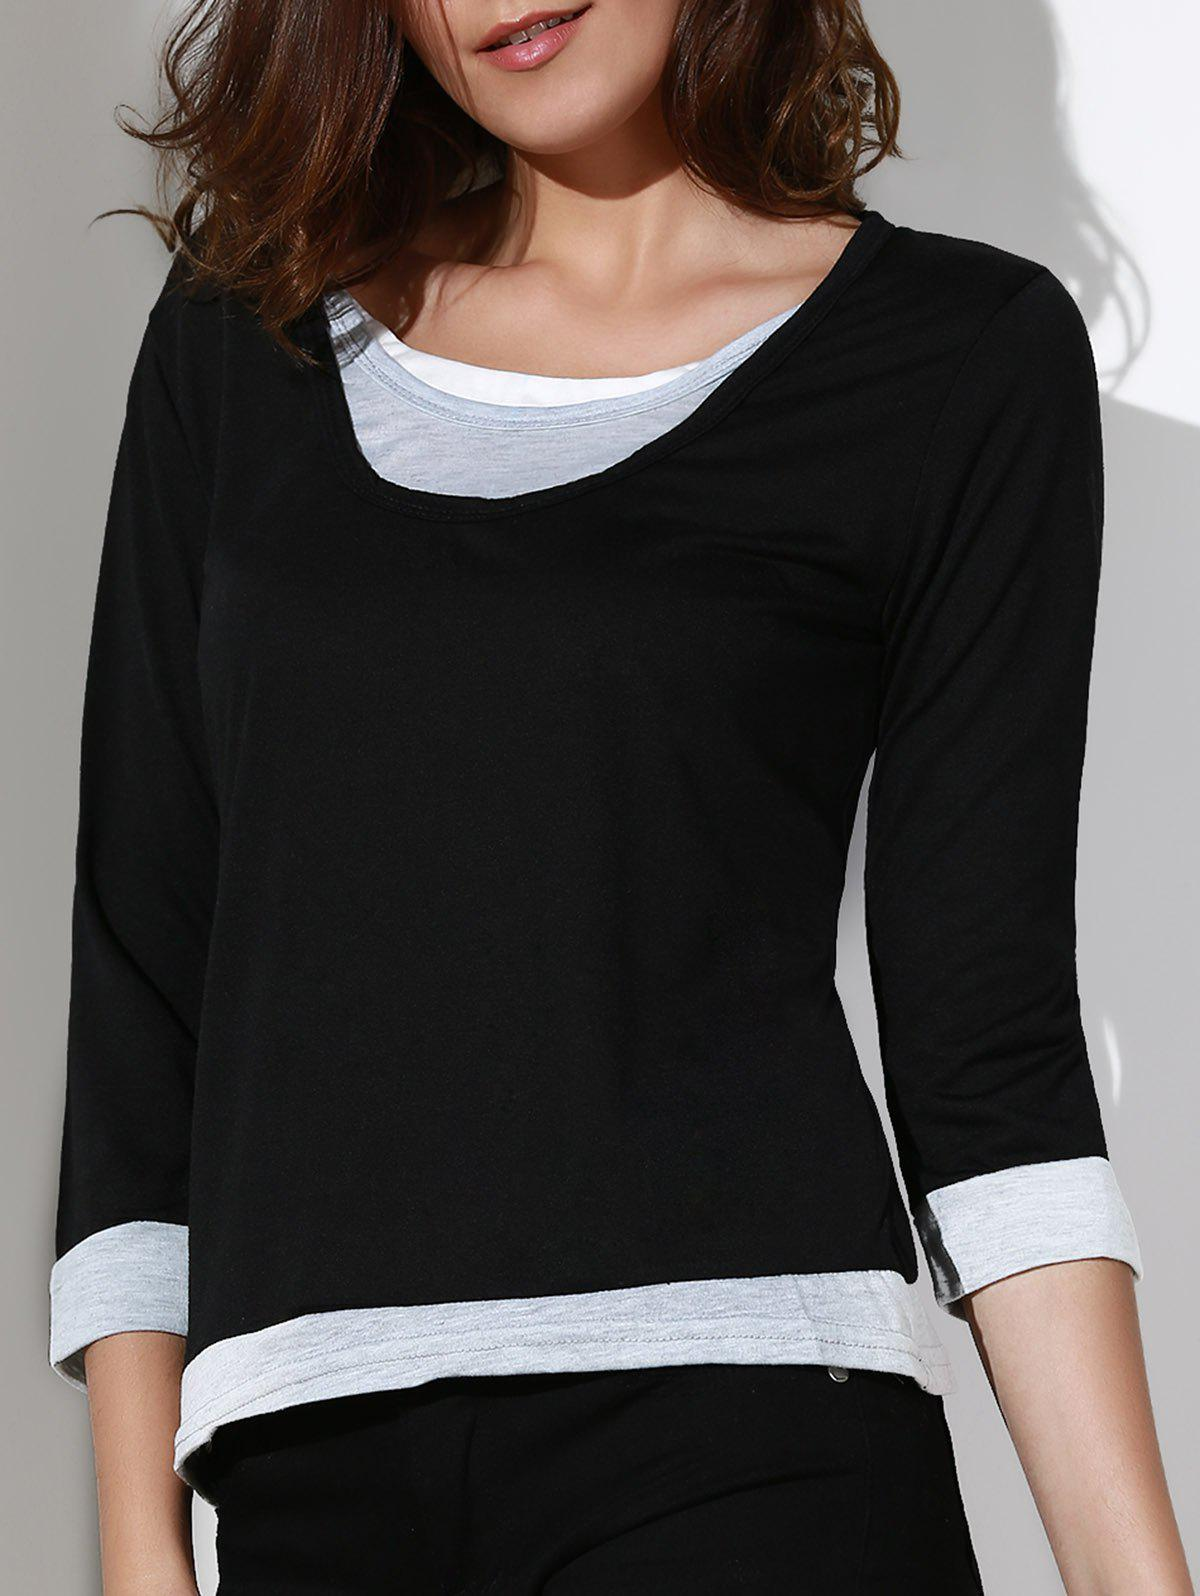 Casual Women's Scoop Neck Color Spliced 3/4 Sleeve T-Shirt - BLACK M